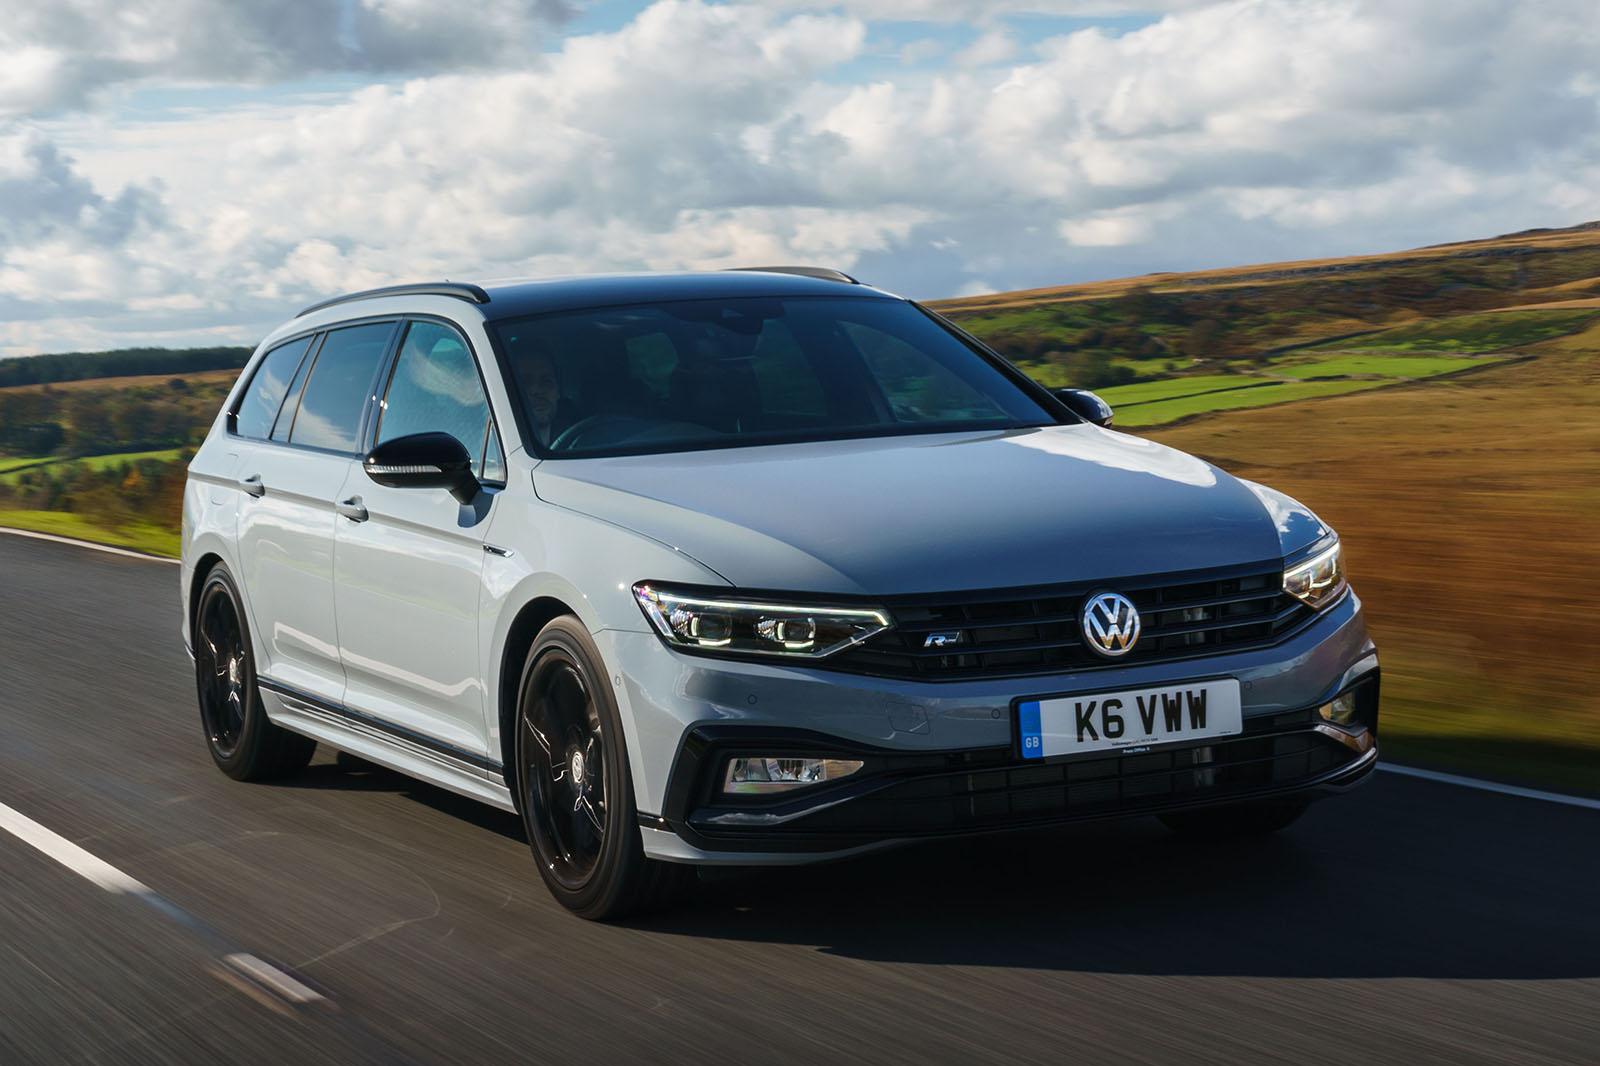 Volkswagen Passat 2 0 Tsi R Line Edition Estate 2019 Uk Review Autocar